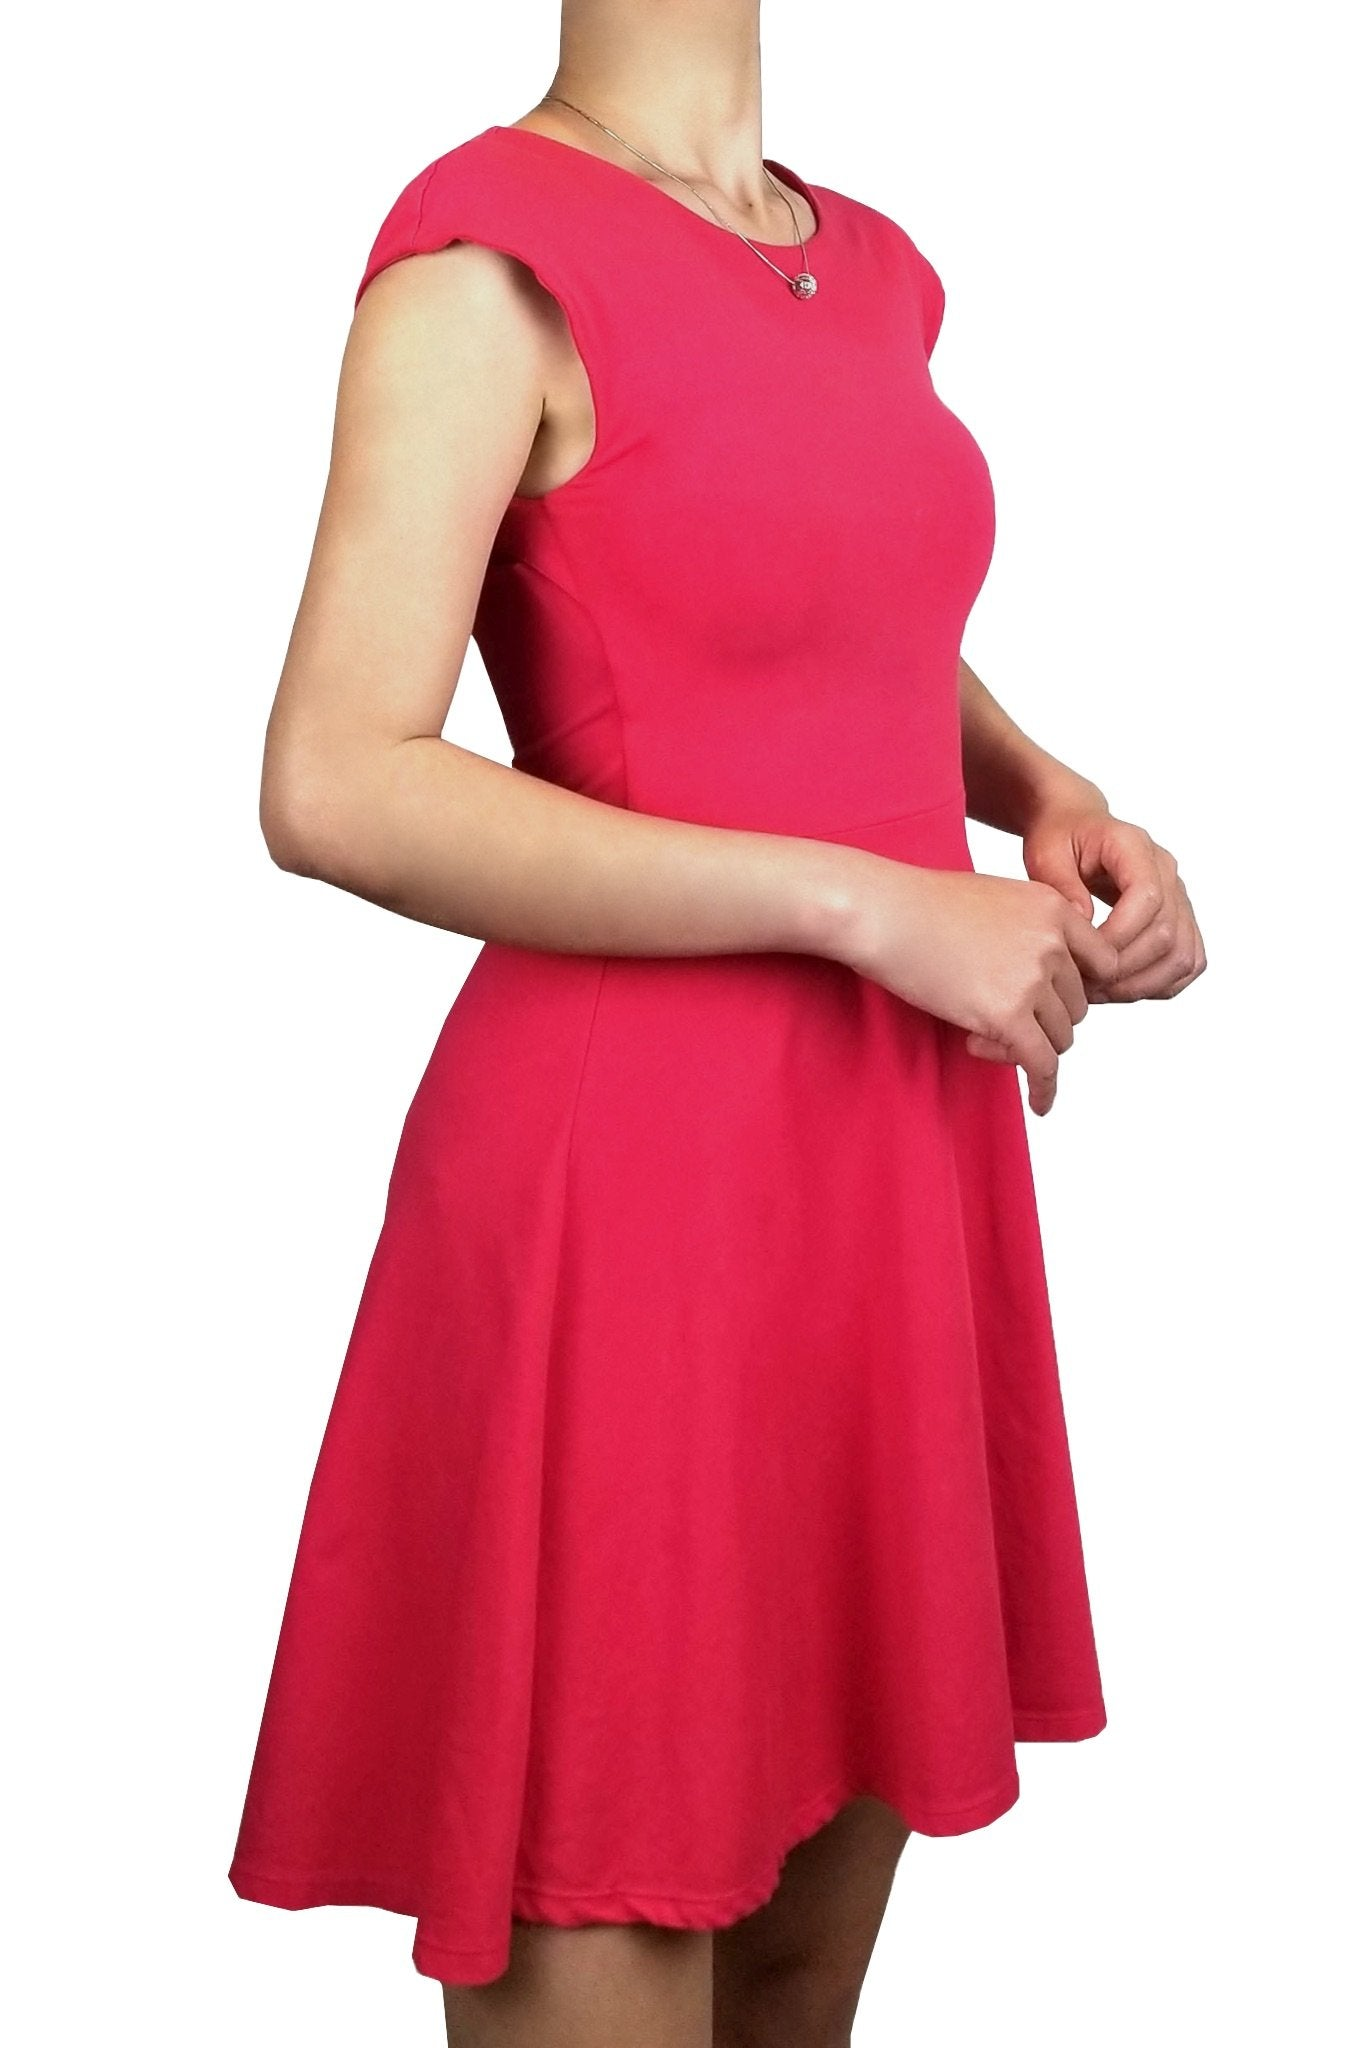 Talula Fit and Flare Mini Dress, Feel beautiful in this fit and flare, vibrant pink mini dress., Pink, 95% Cotton 5% Spandex, women's Dresses & Rompers, women's Pink Dresses & Rompers, Talula women's Dresses & Rompers, dress, summer vibrant pink dress with self-tie open back, party hot pink dress with self-tie open back, casual open back pink dress, fashion, pink self tie open back dress